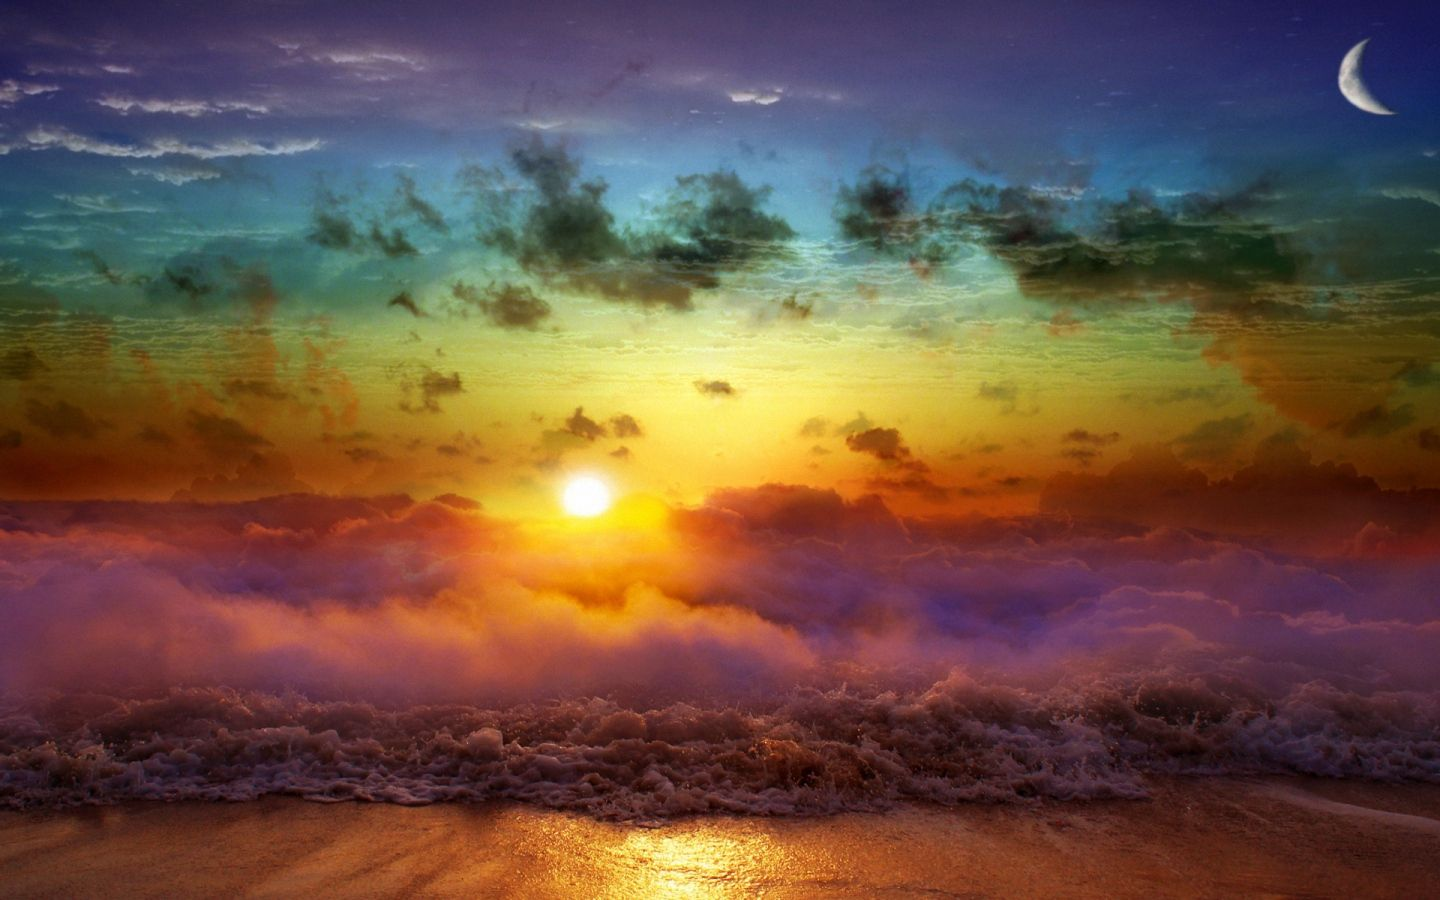 1440x900 Wallpaper Moon Sun Decline Evening Merge Day Night Sea Waves Fog Clouds Sun Background Nature Wallpaper Nature